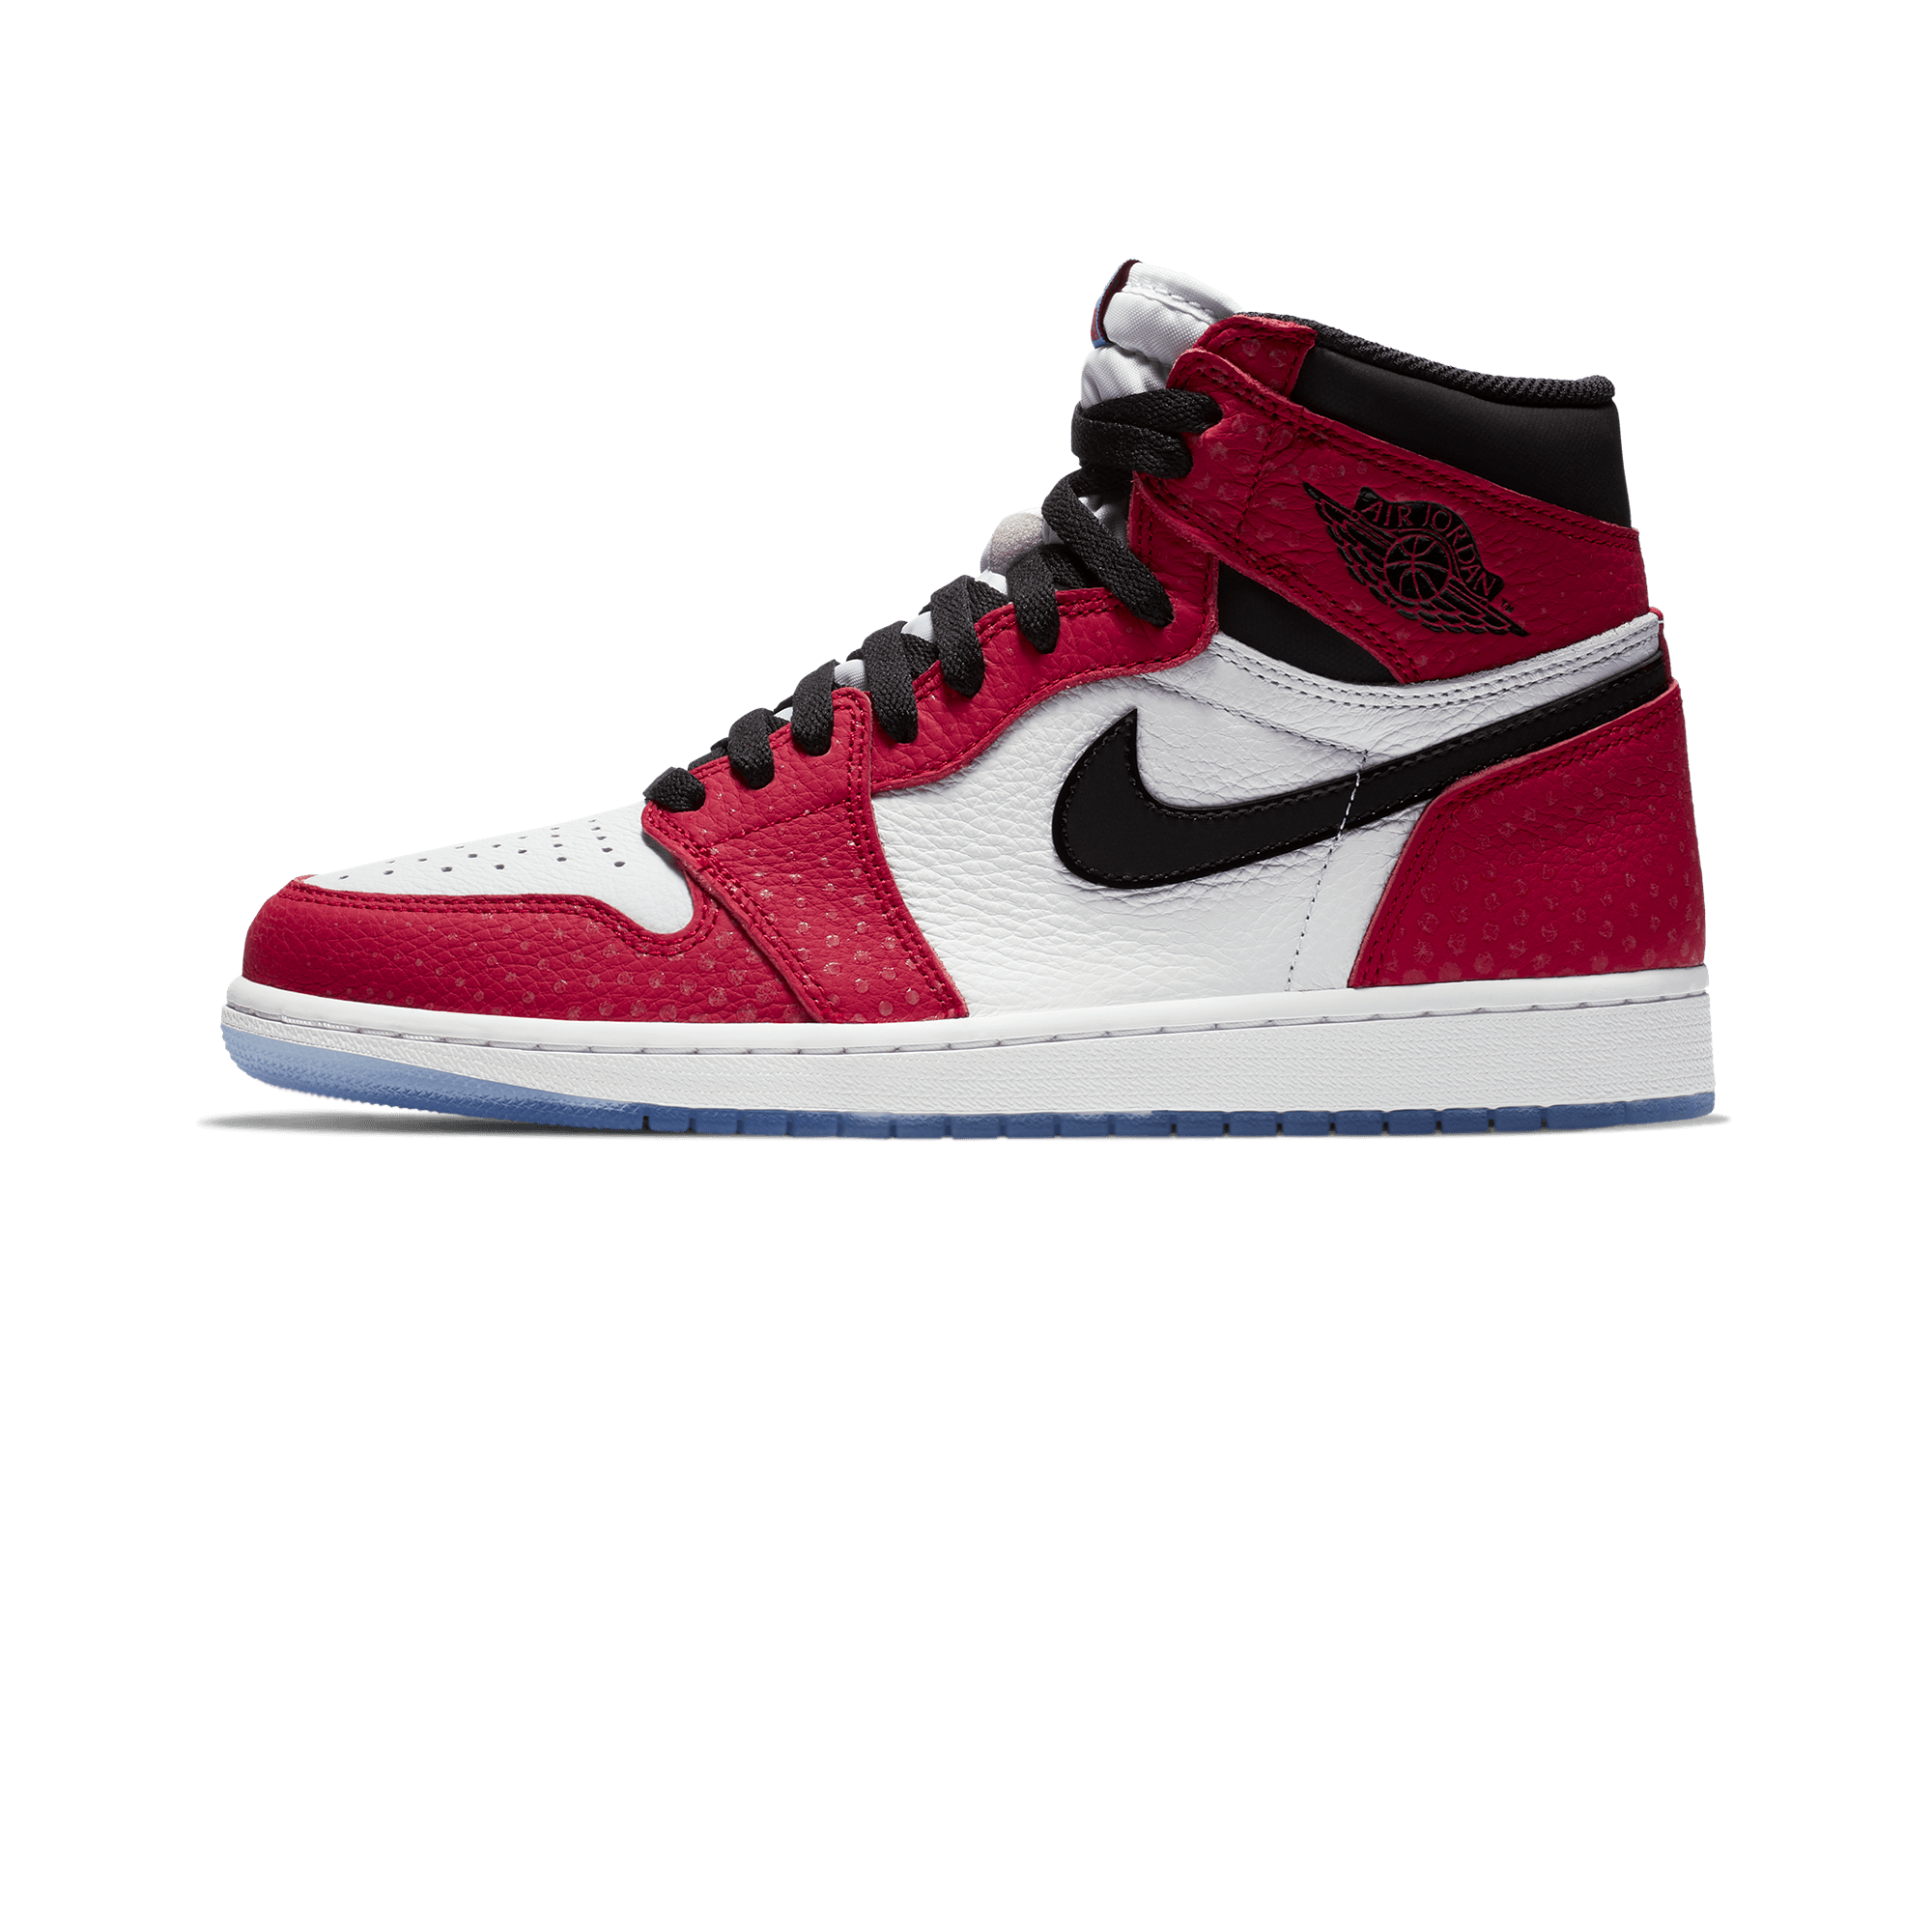 nike air jordan retro 1 uomo